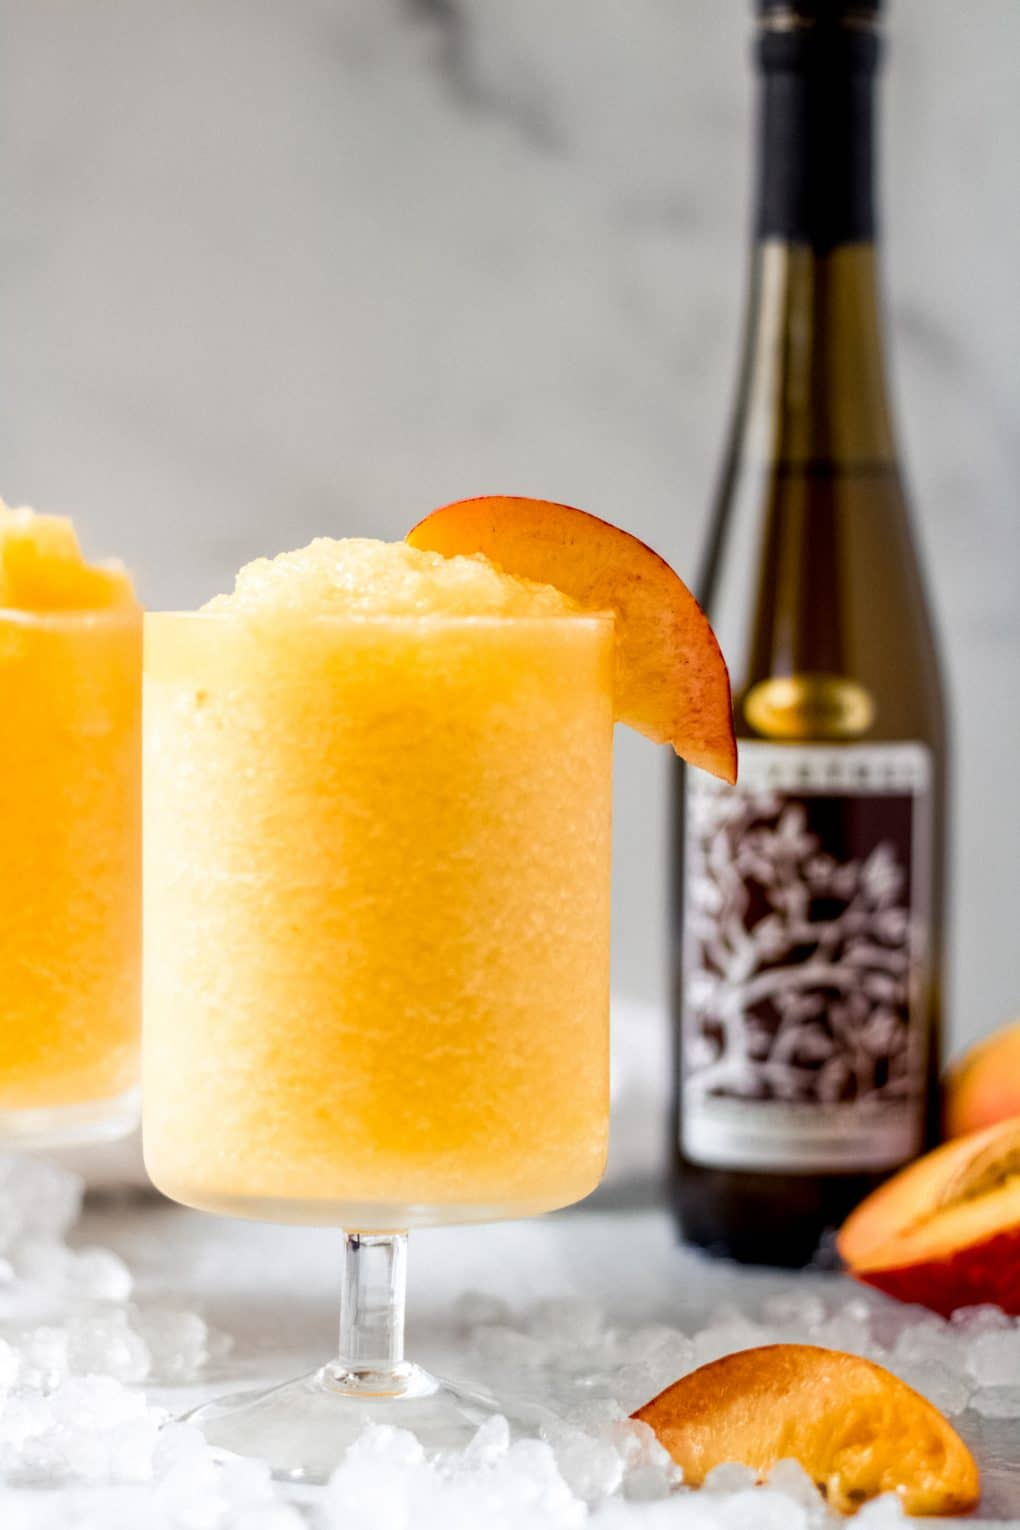 two glasses of frozen peach Bellini and a bottle of white peach balsamic vinegar